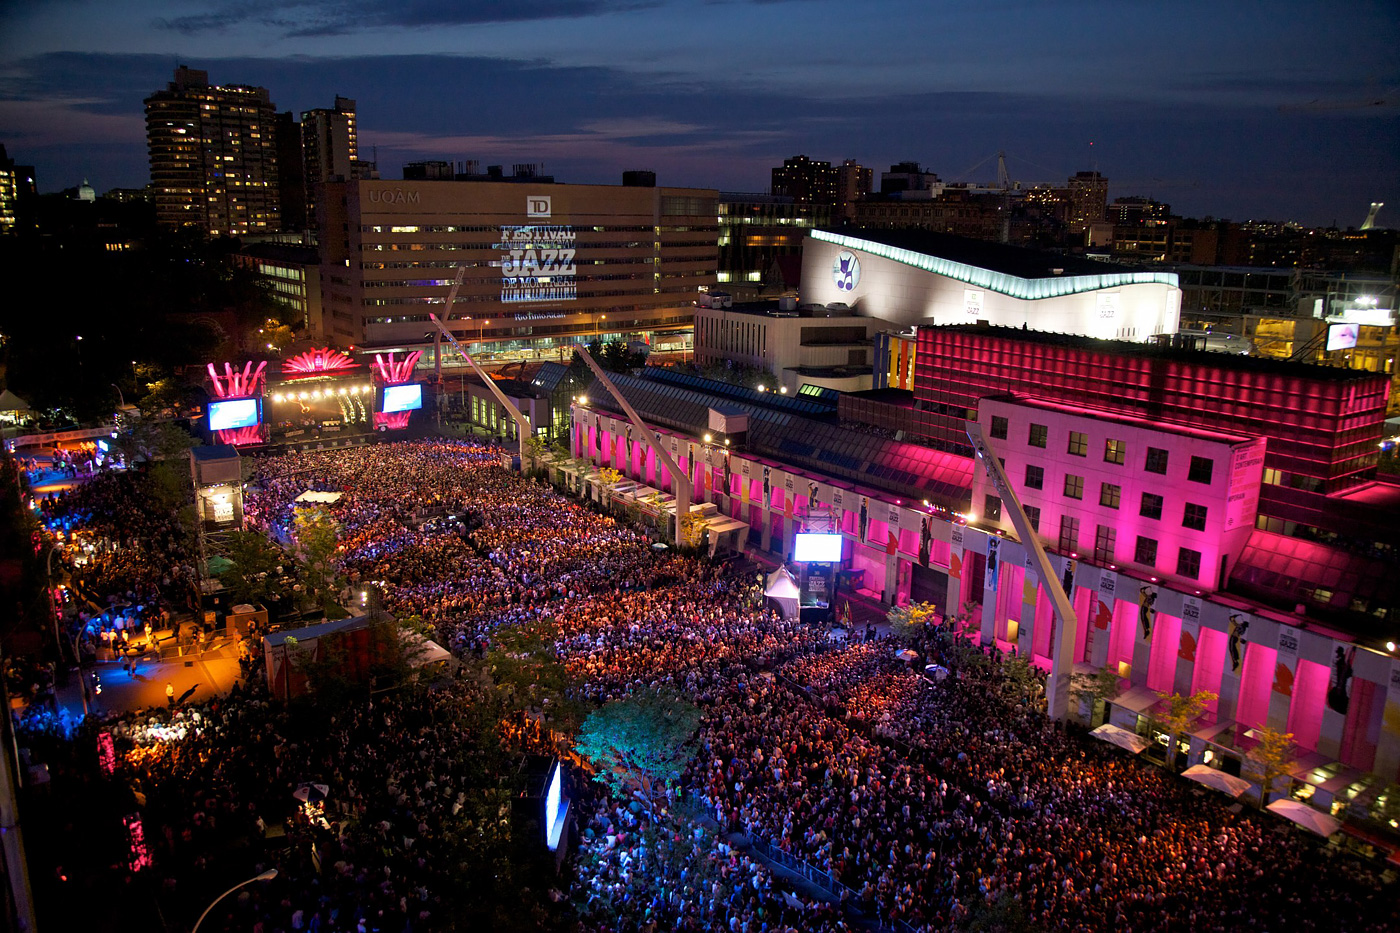 Montreal International Jazz Festival - Photo by Jean-François Leblanc